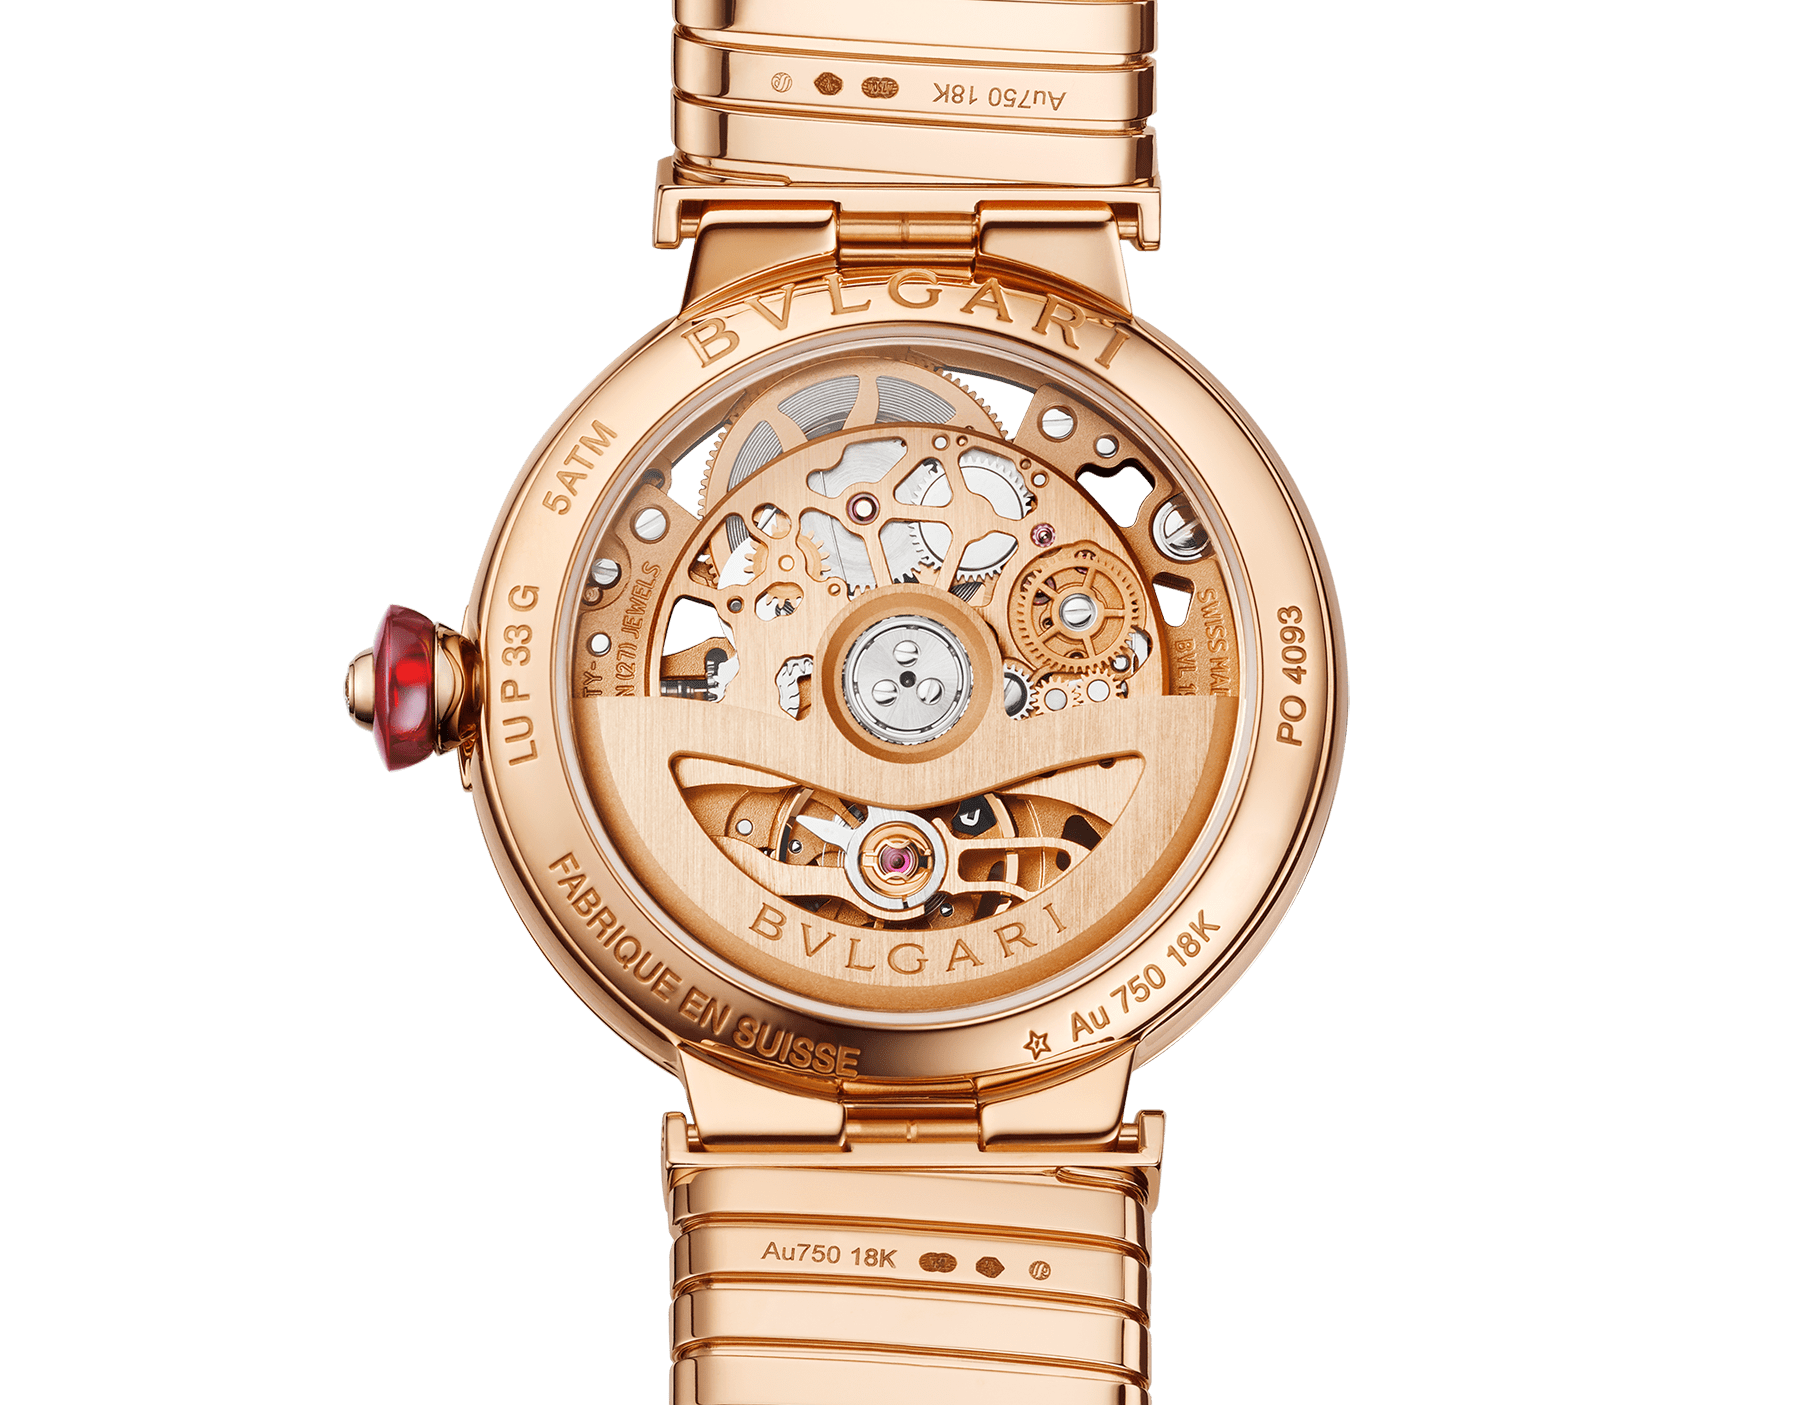 LVCEA Skeleton watch with mechanical manufacture movement, automatic winding and skeleton execution, 18 kt rose gold case, 18kt rose gold bezel set with diamonds, 18 kt rose gold openwork BVLGARI logo dial set with round brilliant-cut diamonds, red hands and 18 kt rose gold tubogas bracelet. Exclusive Edition for the United States 103134 image 4